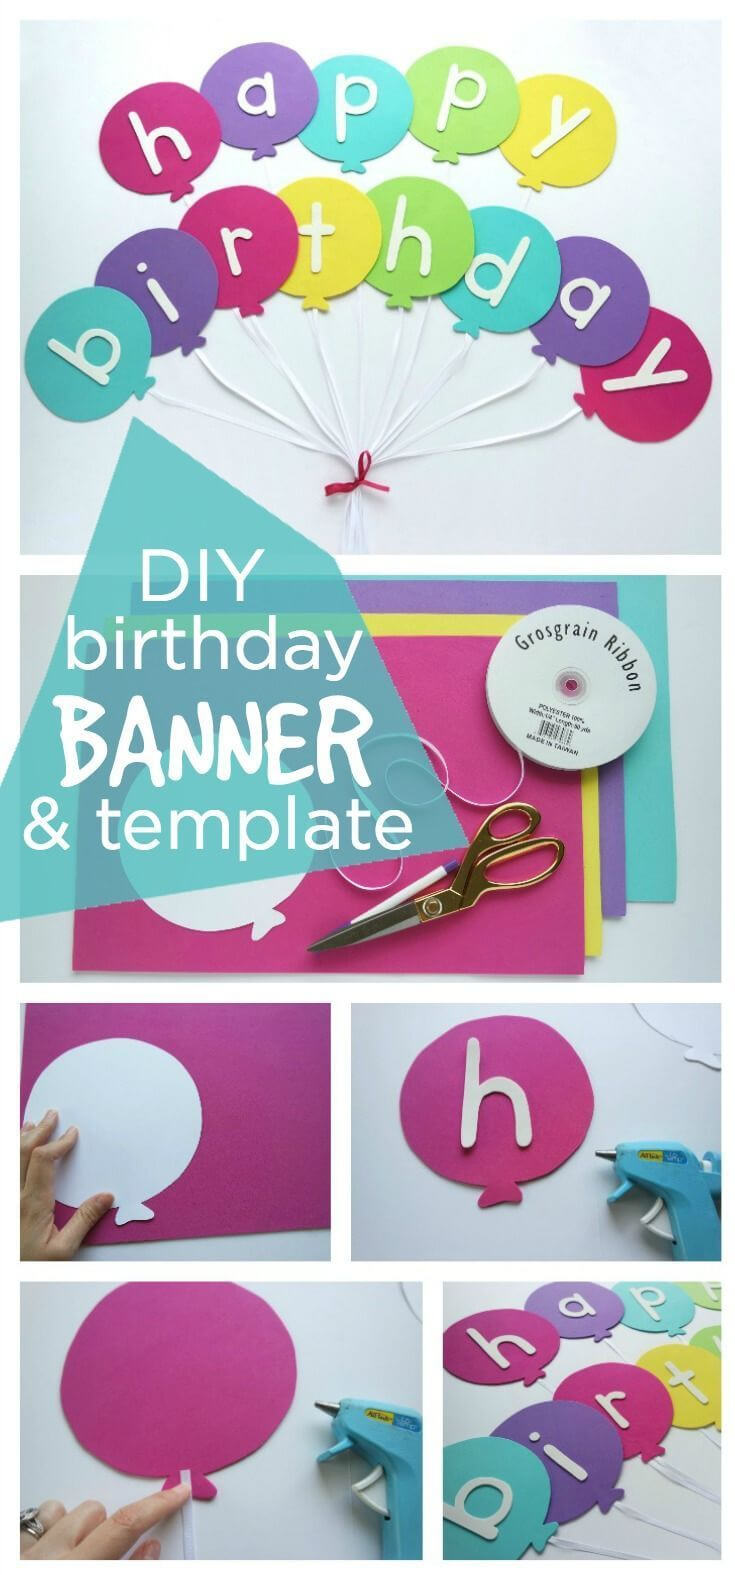 Happy Birthday Banner Diy Template | Diy Party Ideas  Group Intended For Diy Party Banner Template